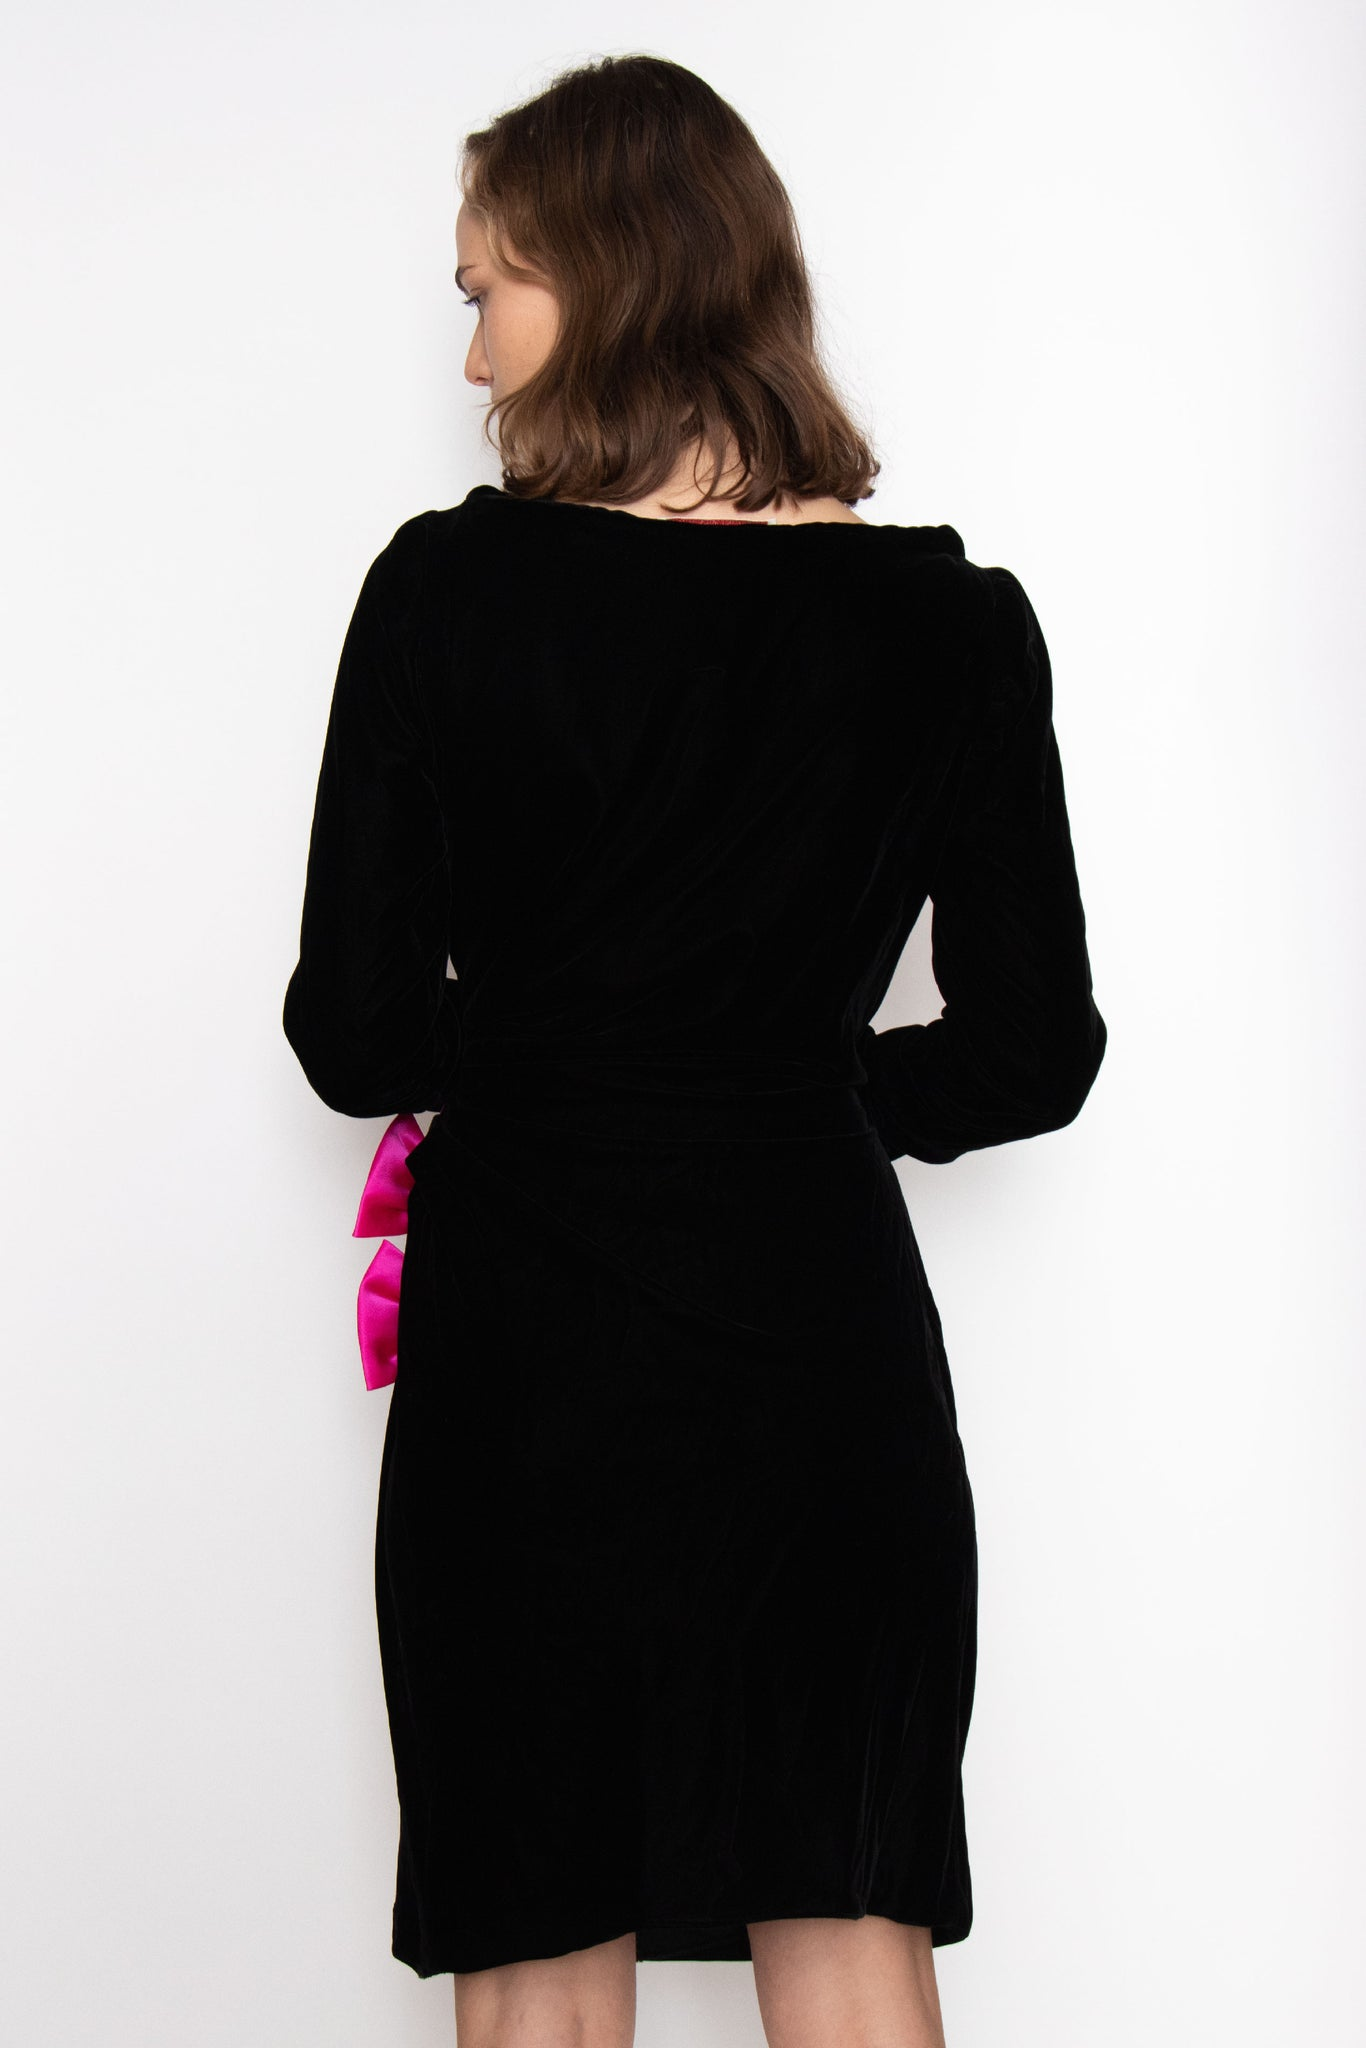 A 1990s Oscar de la Renta Black Velvet and Pink Bow Cocktail Dress S